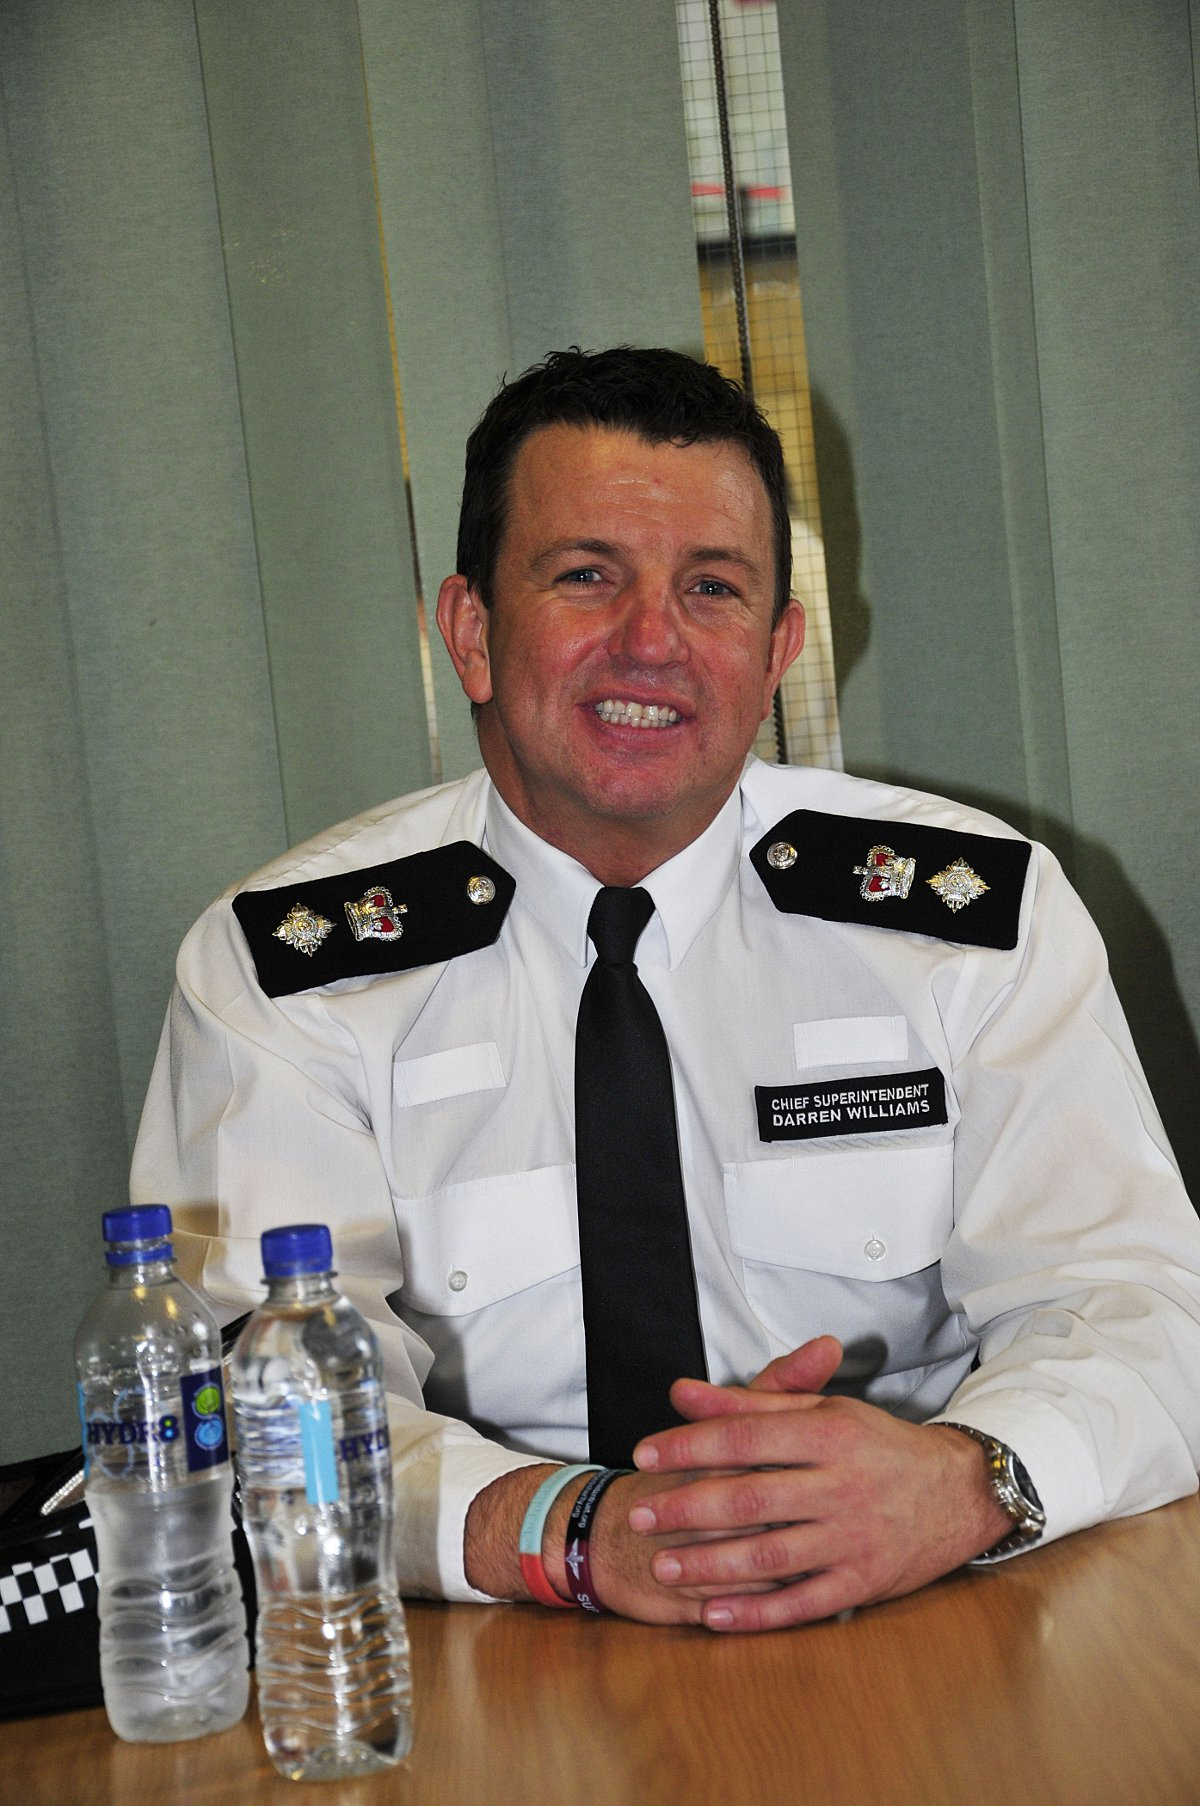 Chief Superintendant Darren Williams has been suspended from duty